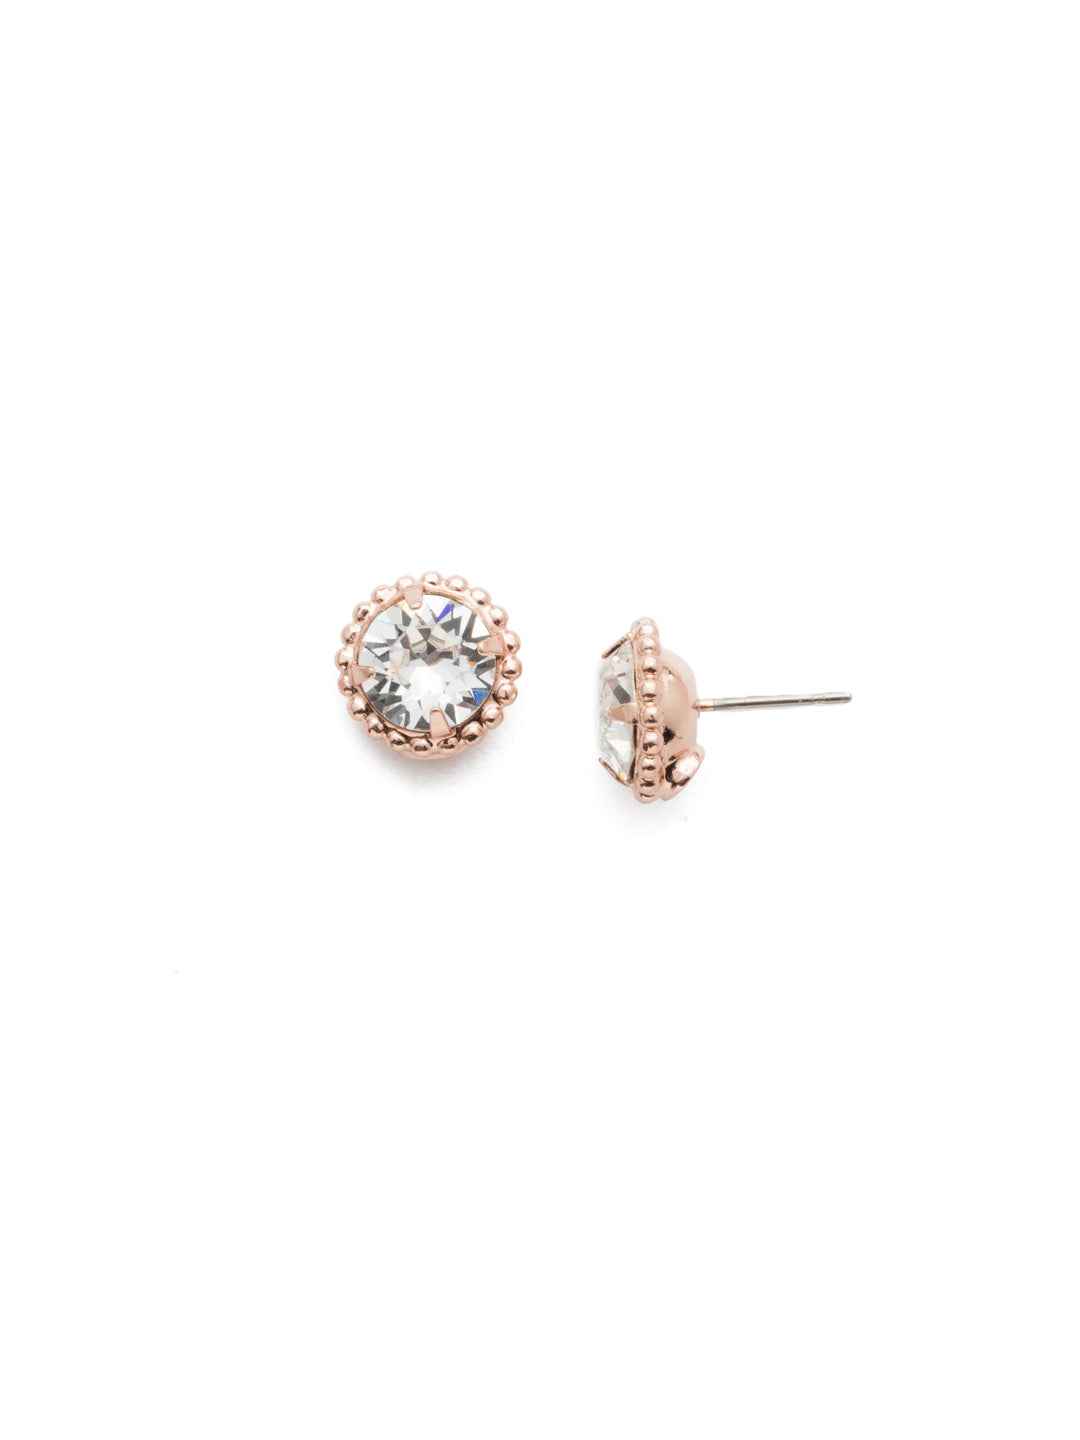 Simplicity Stud Earrings - EBY38RGCRY